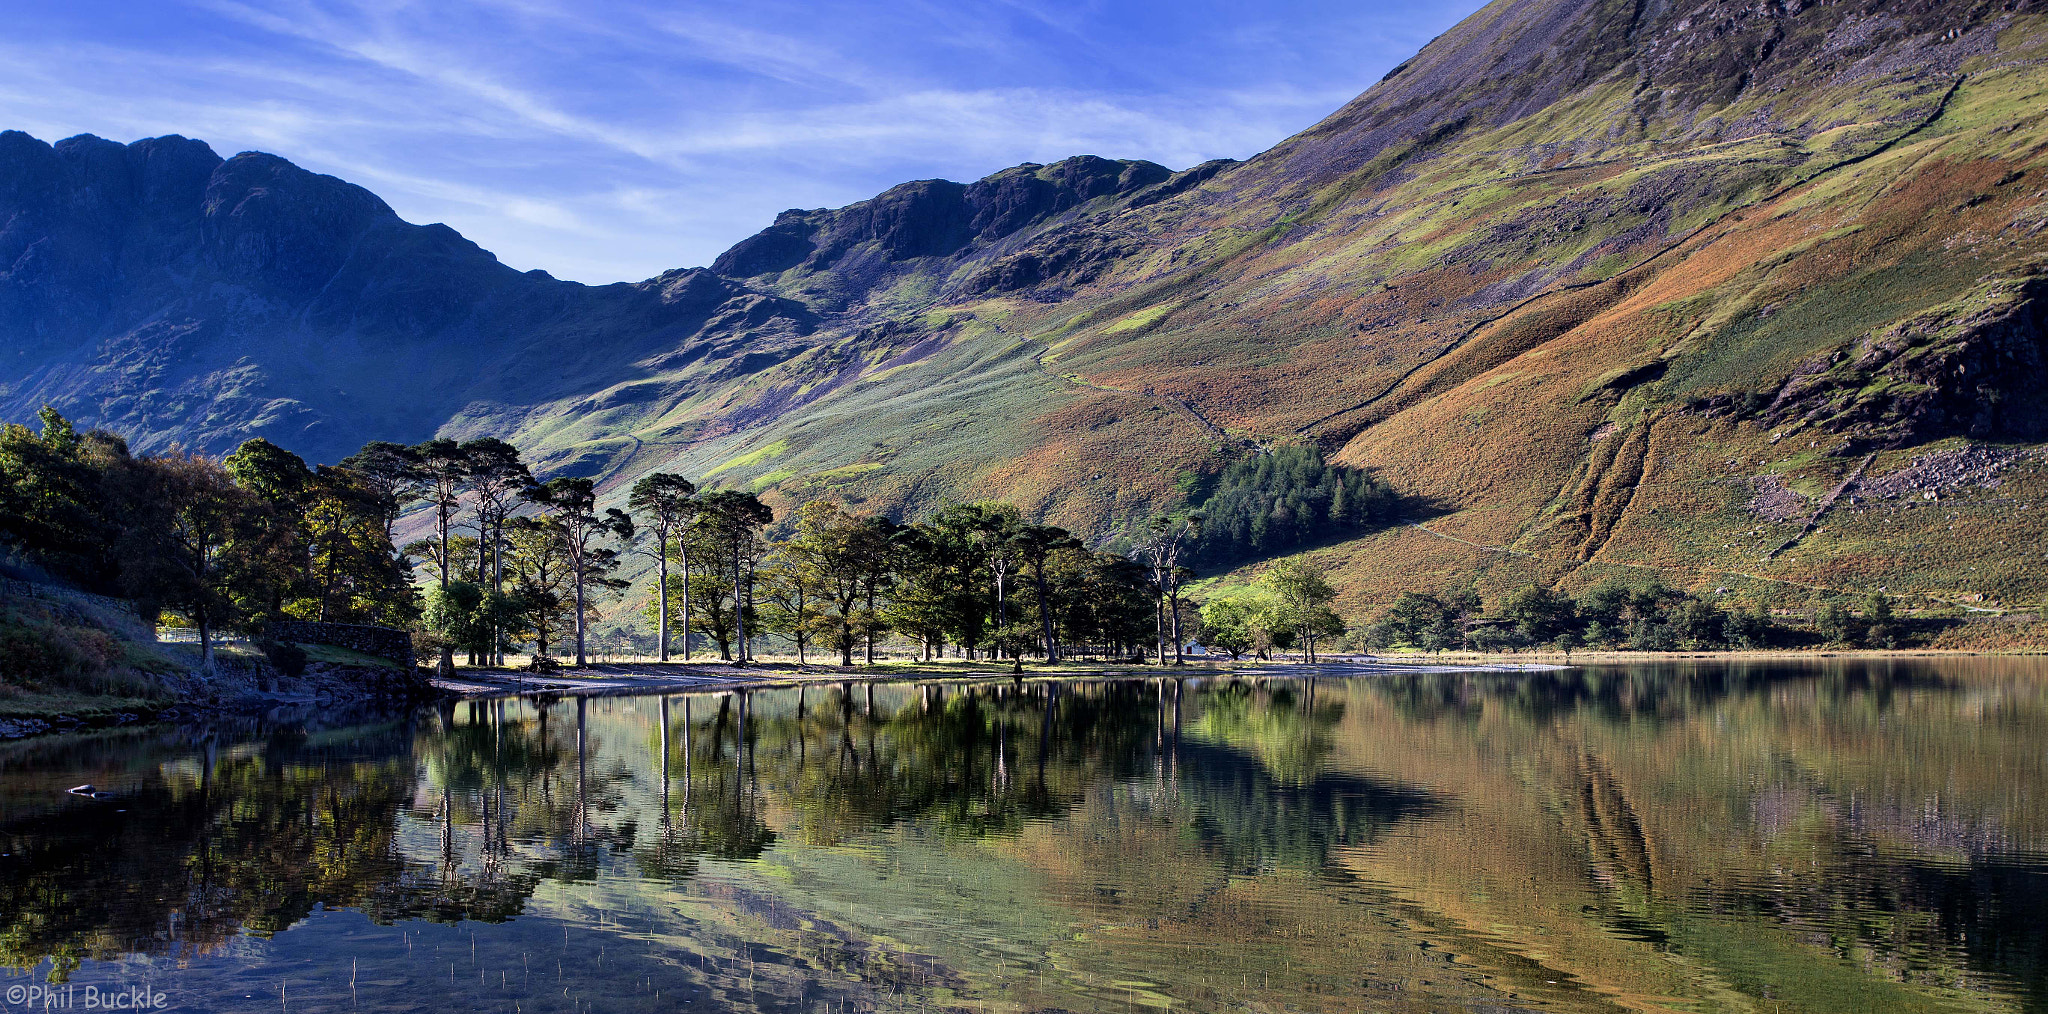 Photograph Buttermere Reflection by Phil Buckle on 500px